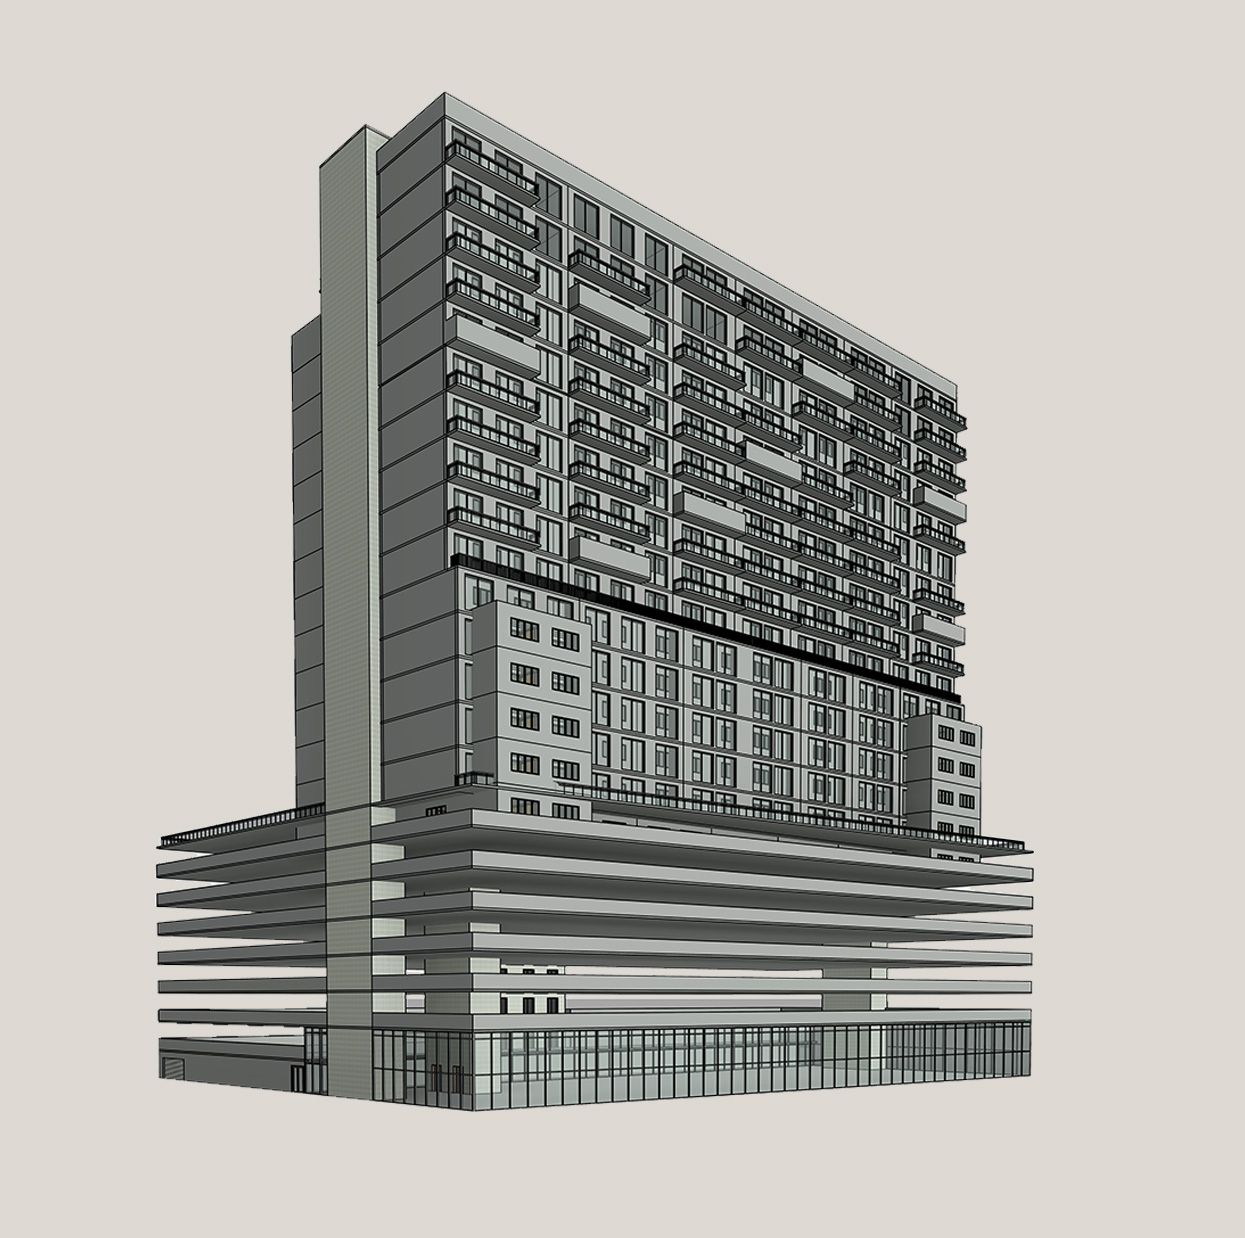 Rear-View_Architectural-BIM-Model_Multi-Story-Retail-Shopping-Mall-Facility_Modeling-by-United-BIM